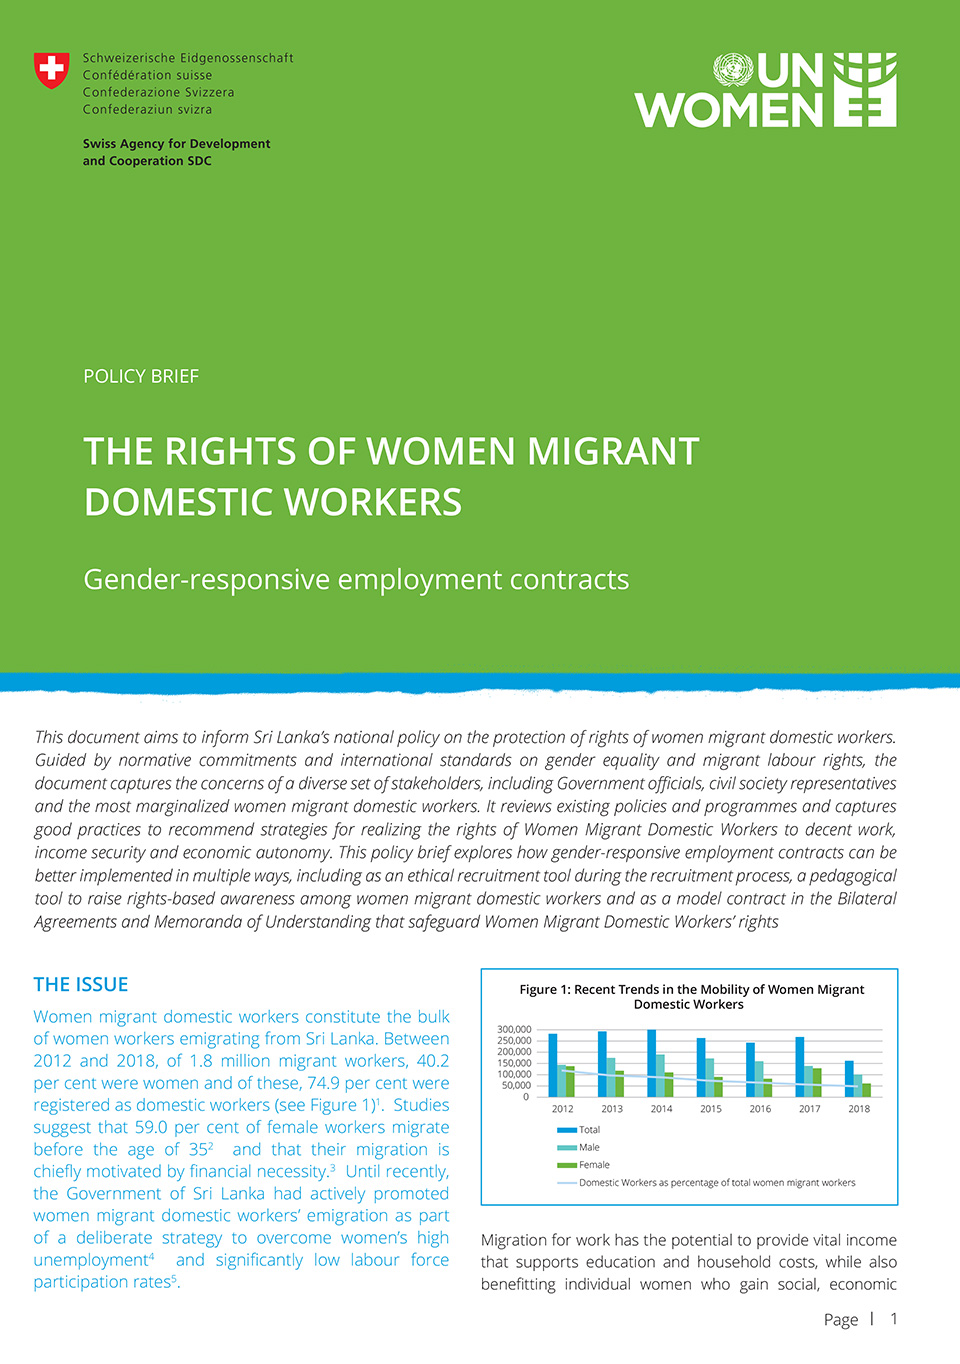 POLICY BRIEF: The rights of women migrant domestic workers | Gender-responsive employment contracts